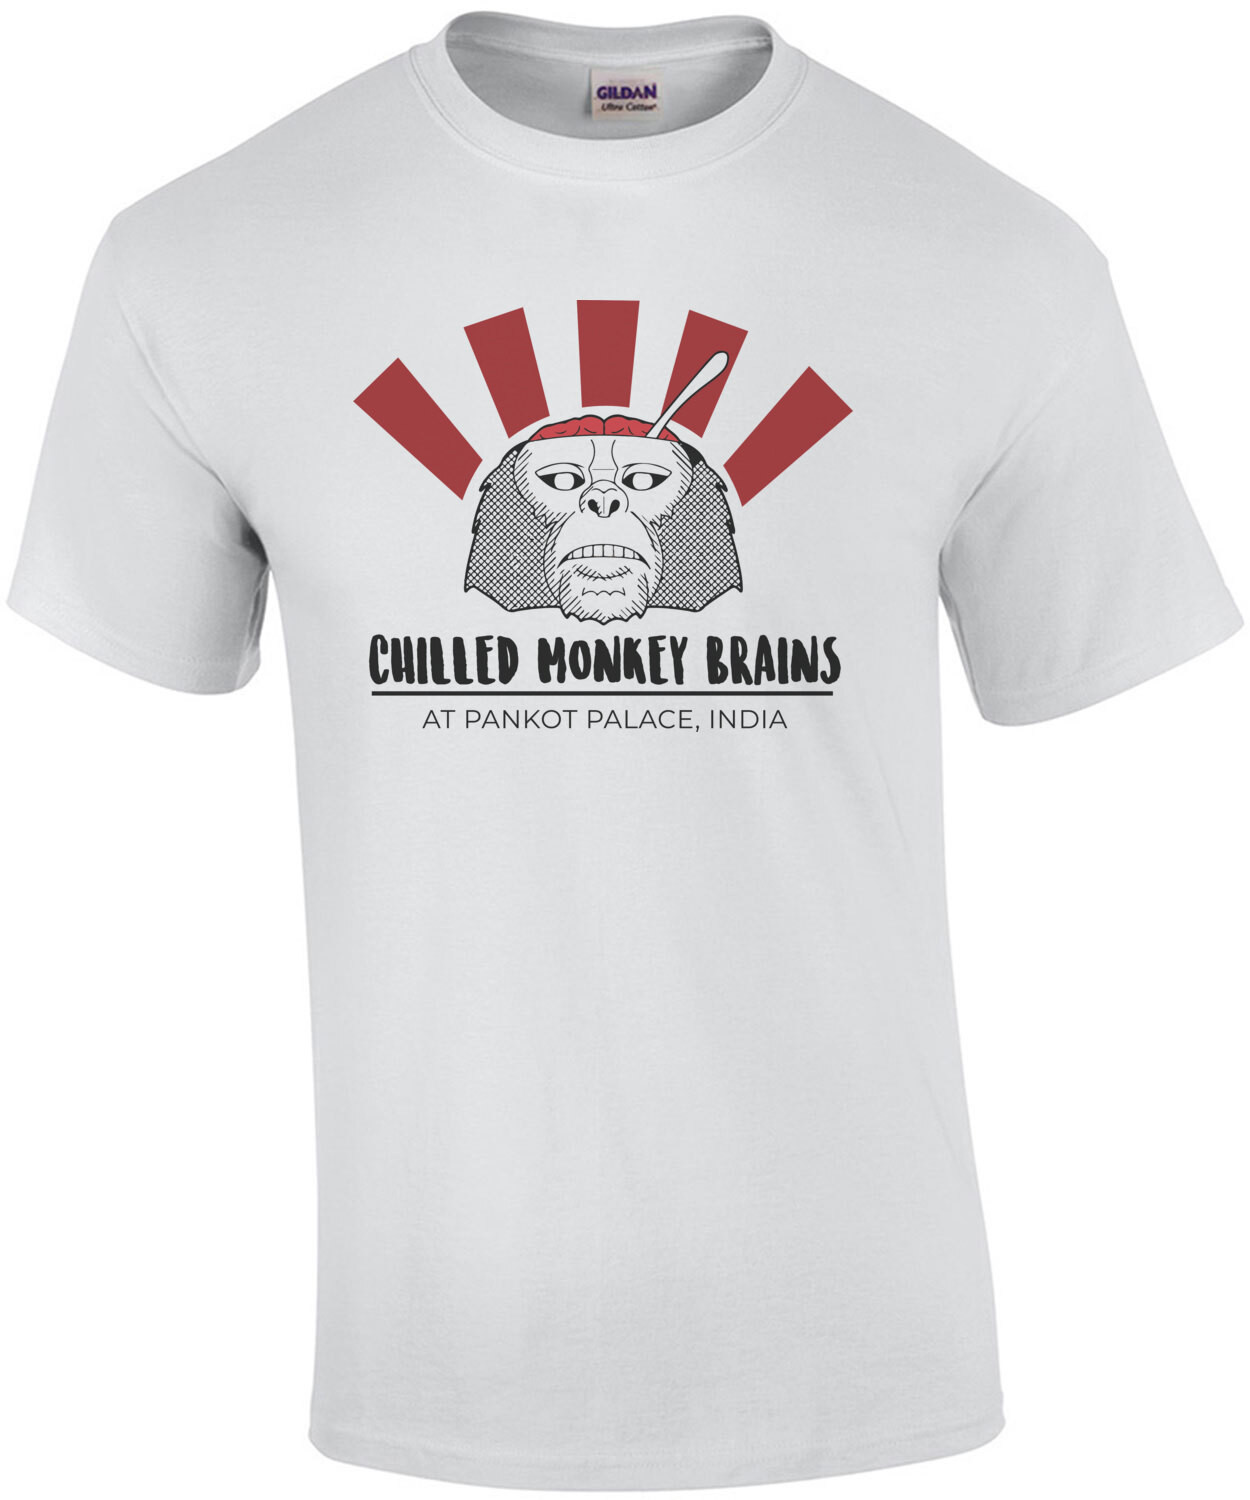 Chilled Monkey Brains - at Pankot Palace India - Indiana Jones and the Temple of Doom - 80's T-Shirt